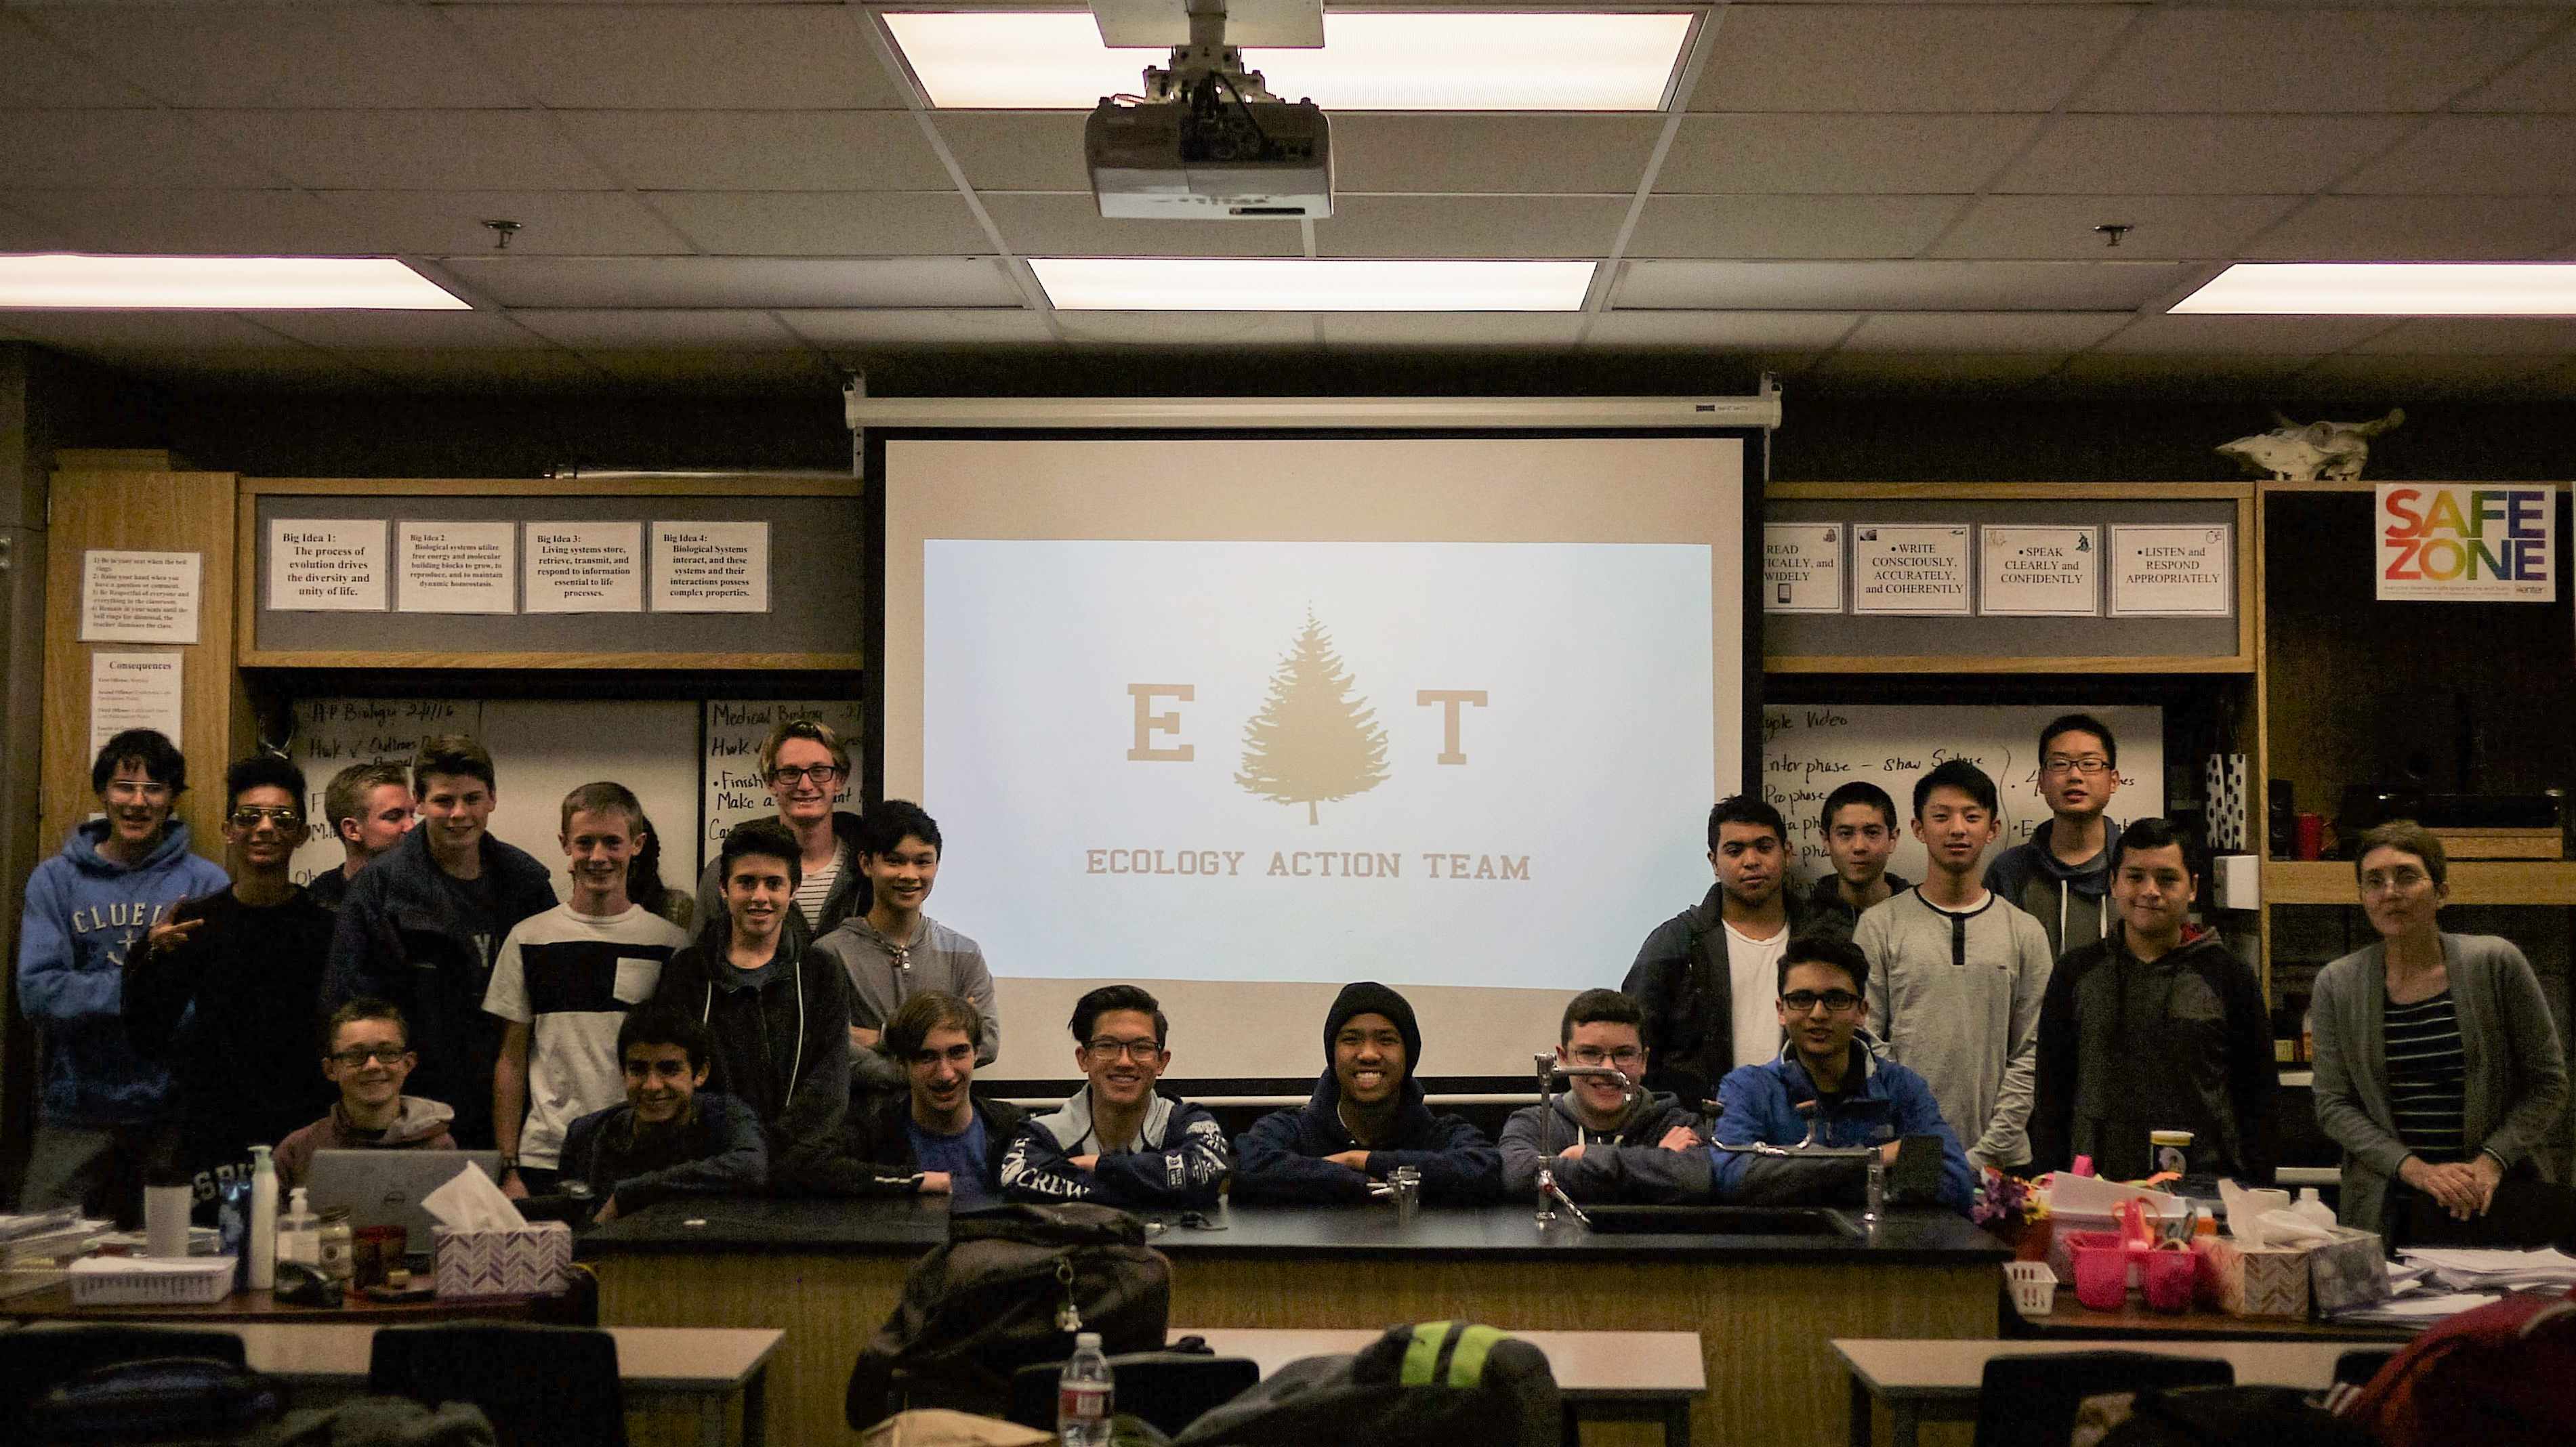 The san juan hills high school ecology action team is leading the charge to push for